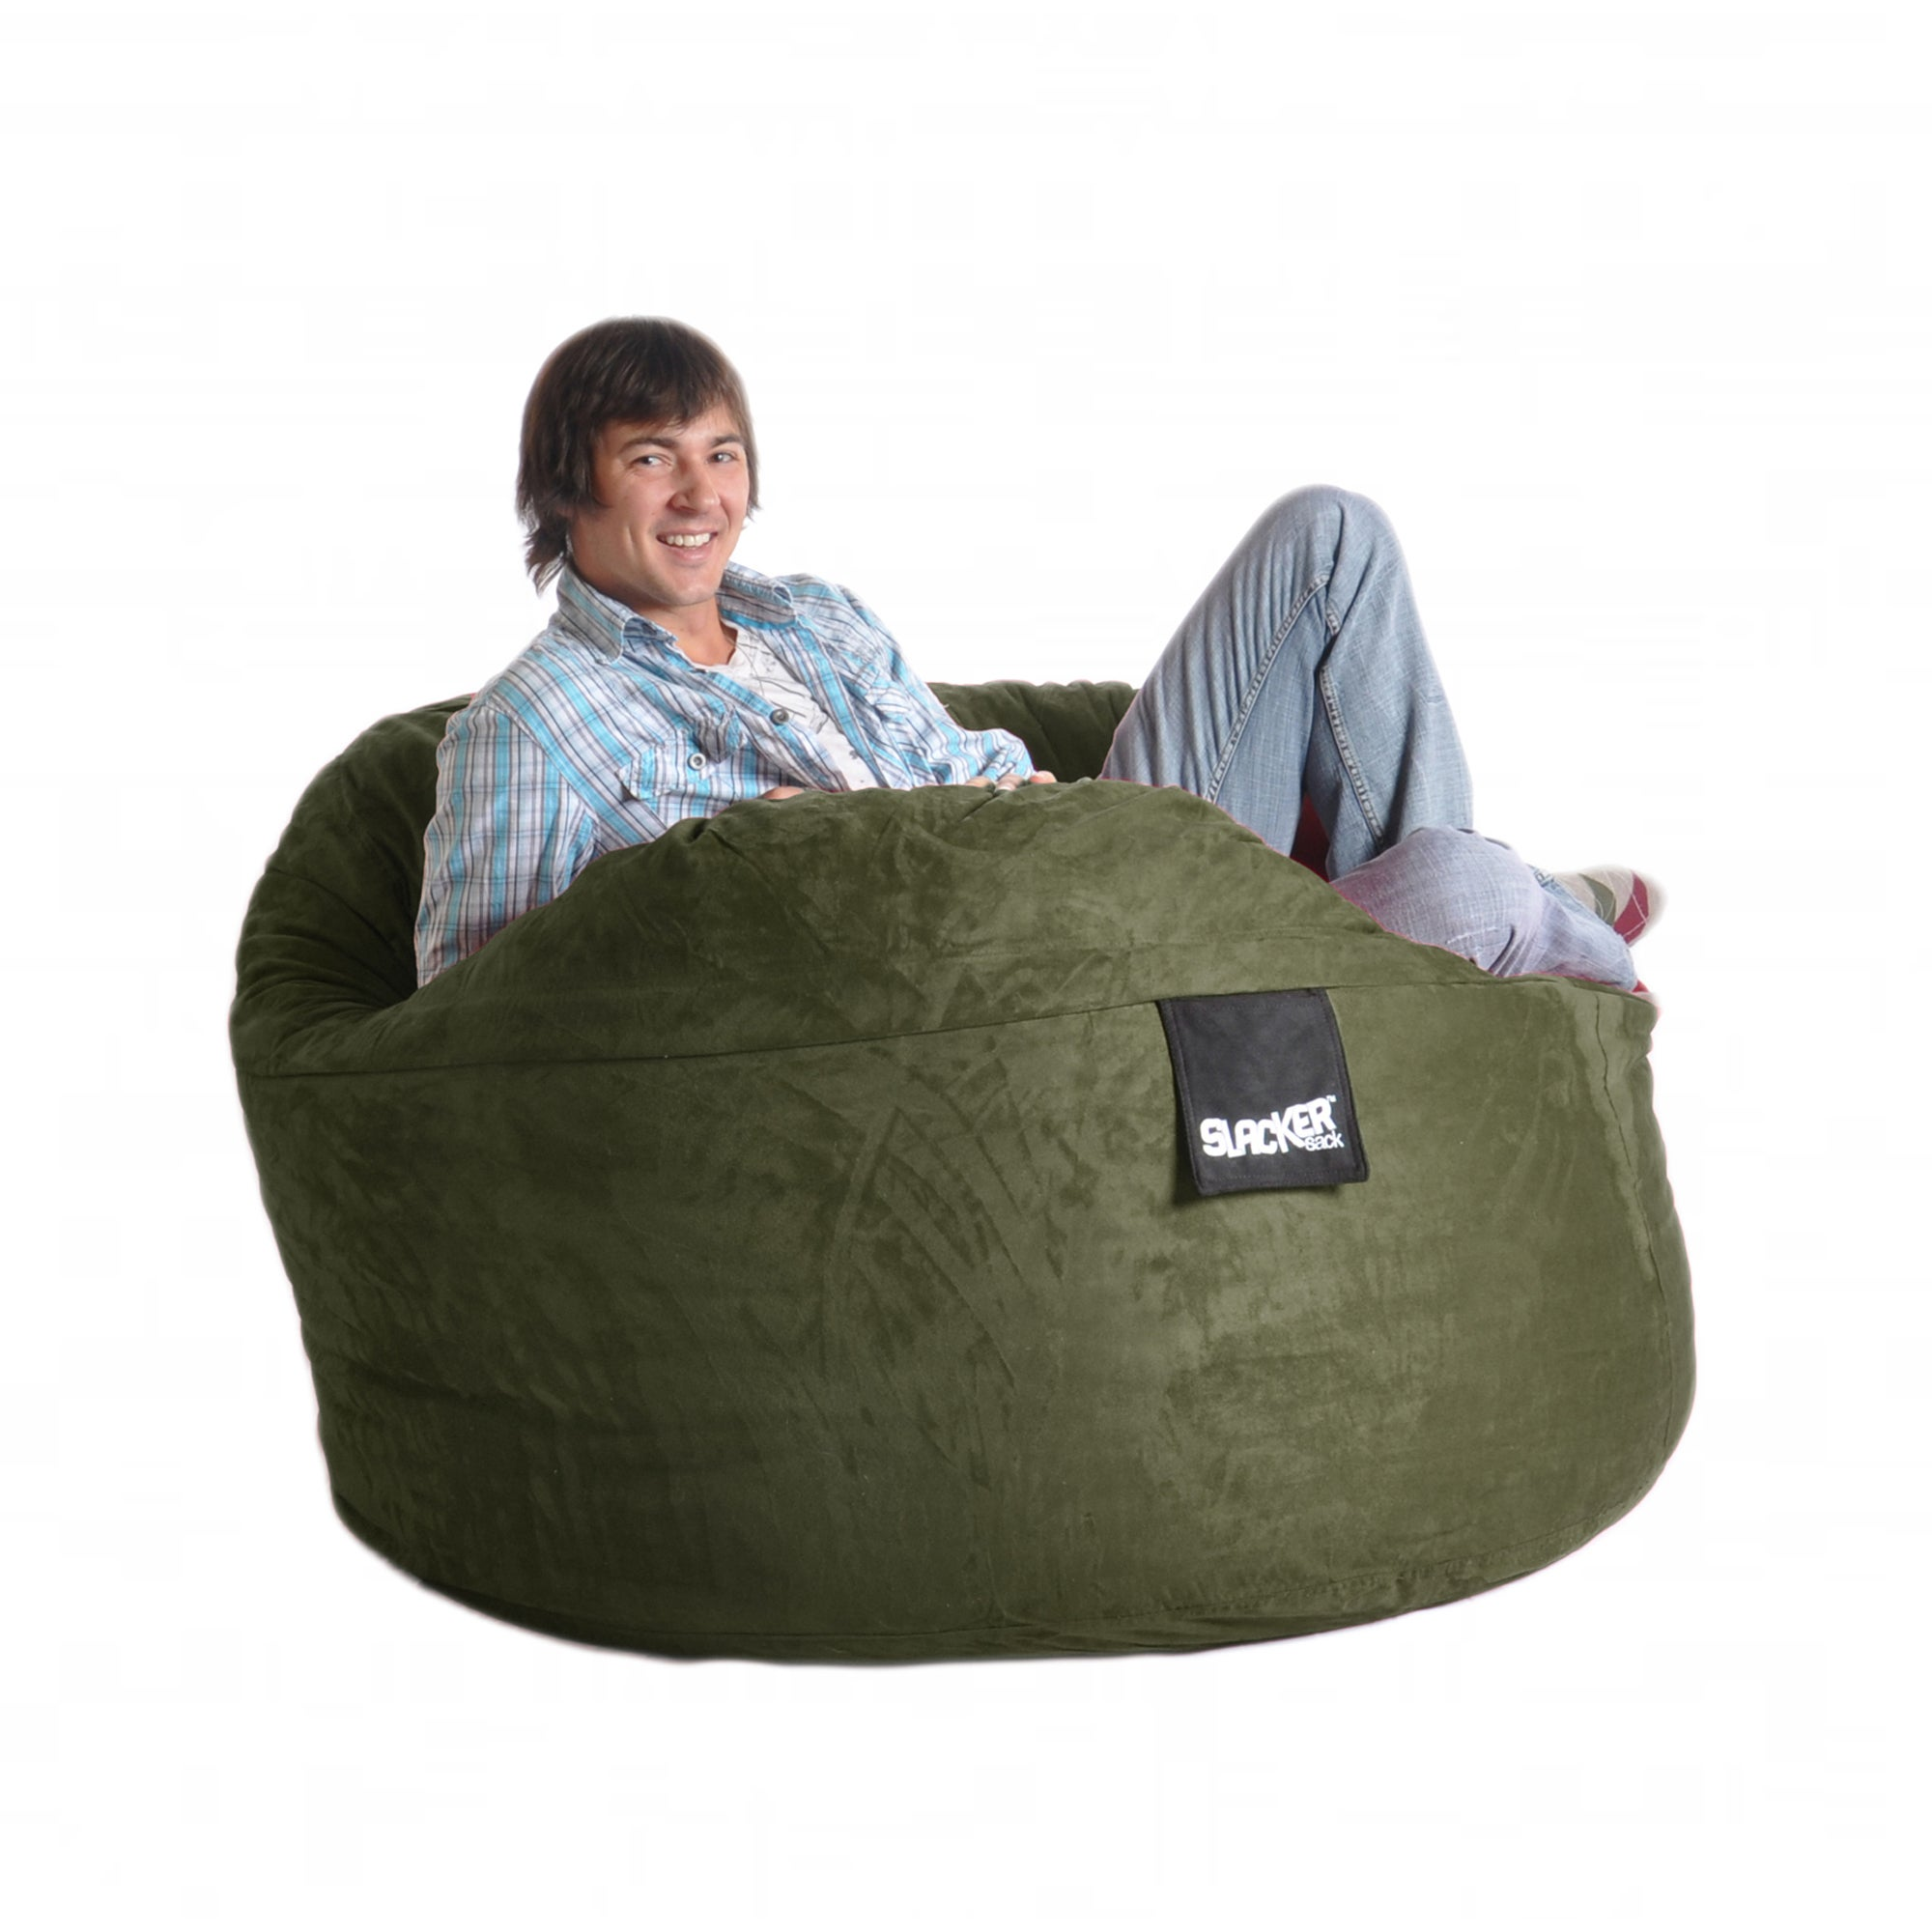 Olive Green 5-foot Microfiber and Foam Bean Bag at Sears.com